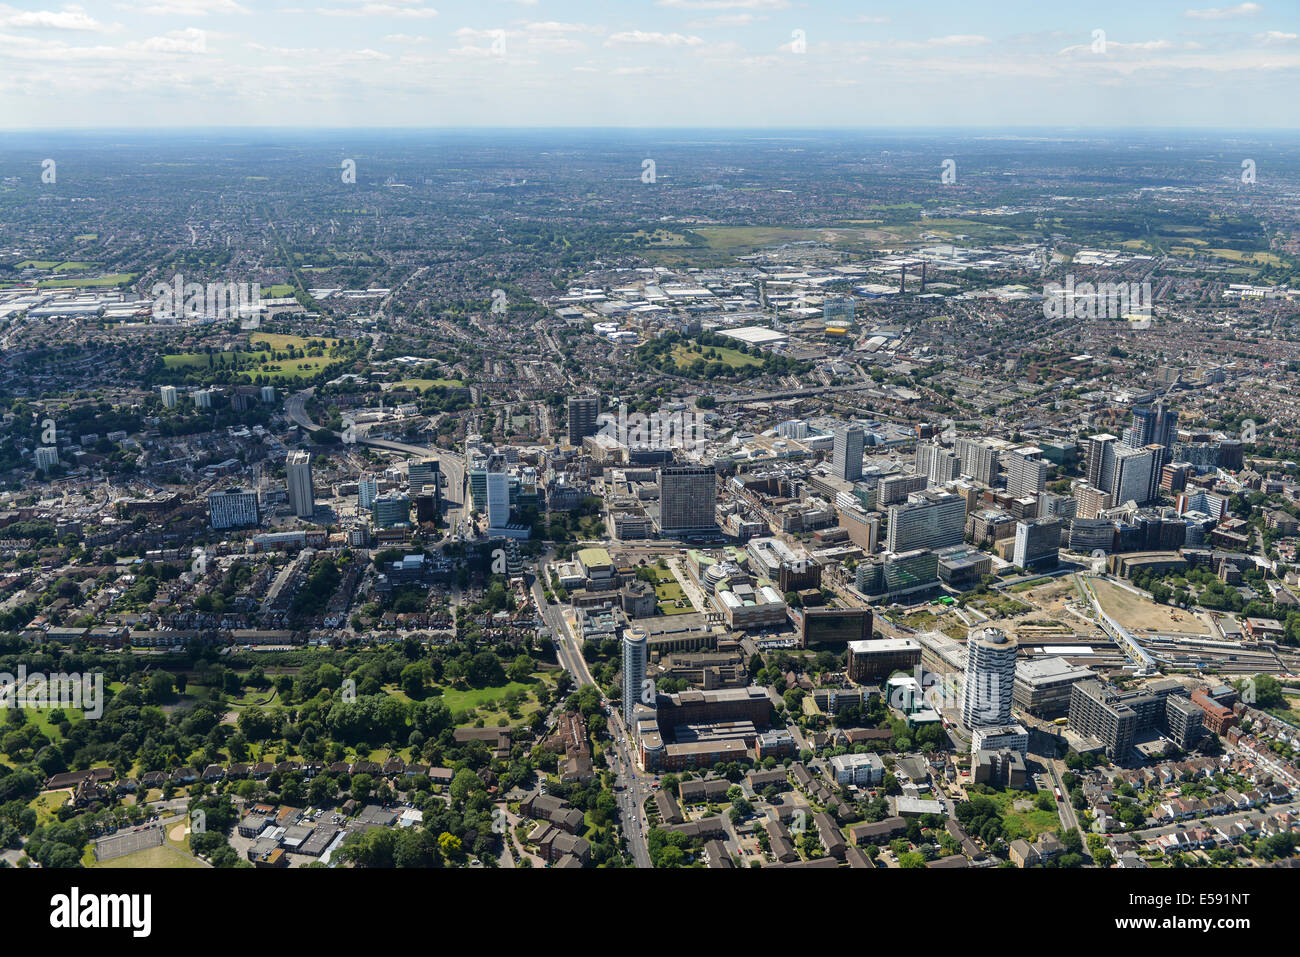 An aerial view of Croydon town centre and surroundings. - Stock Image